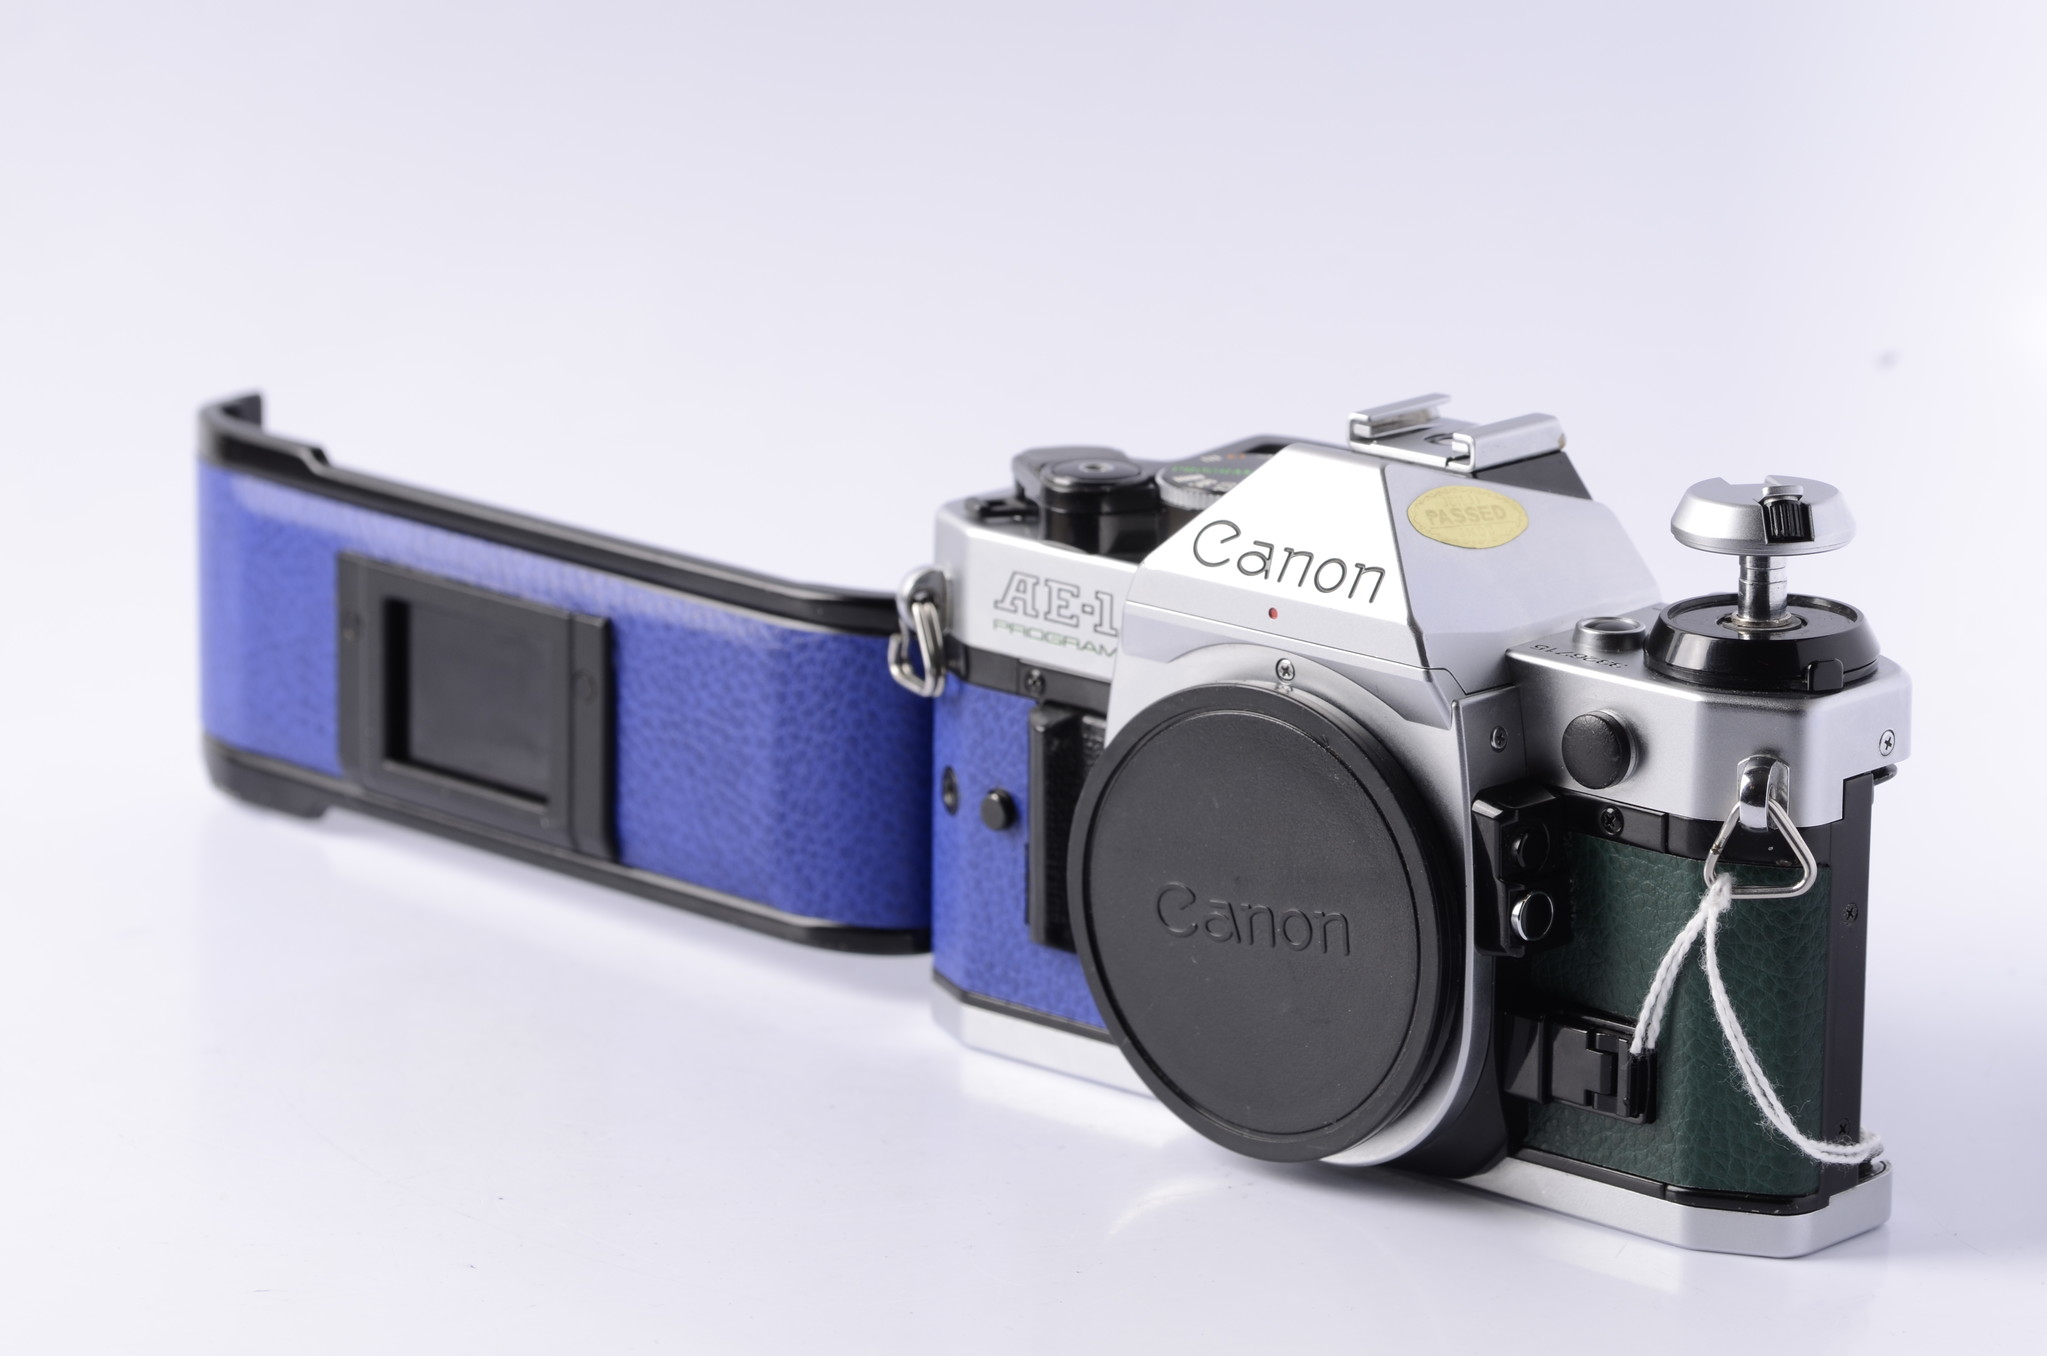 Repairs with Aidan: Re-skinning a Canon AE-1 Program